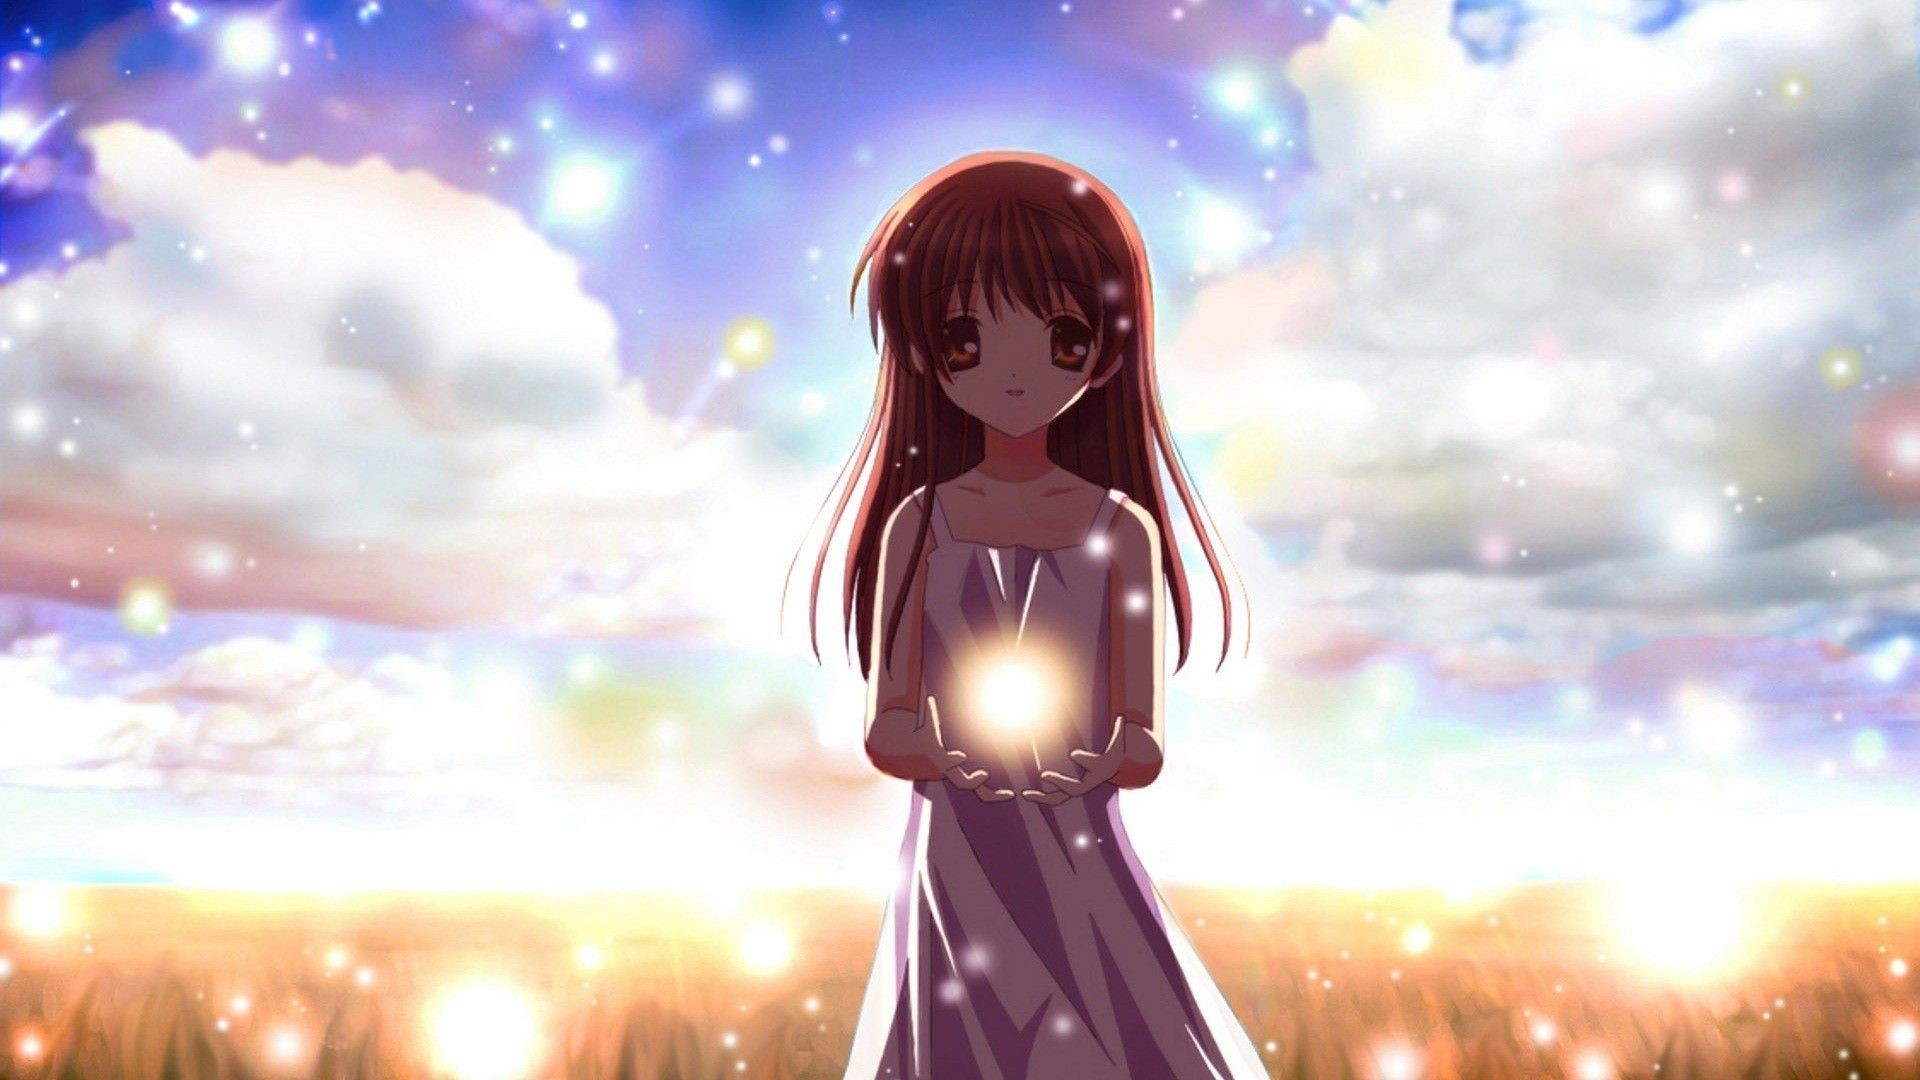 Page 5: Full HD 1080p Anime Wallpapers, Desktop Backgrounds HD